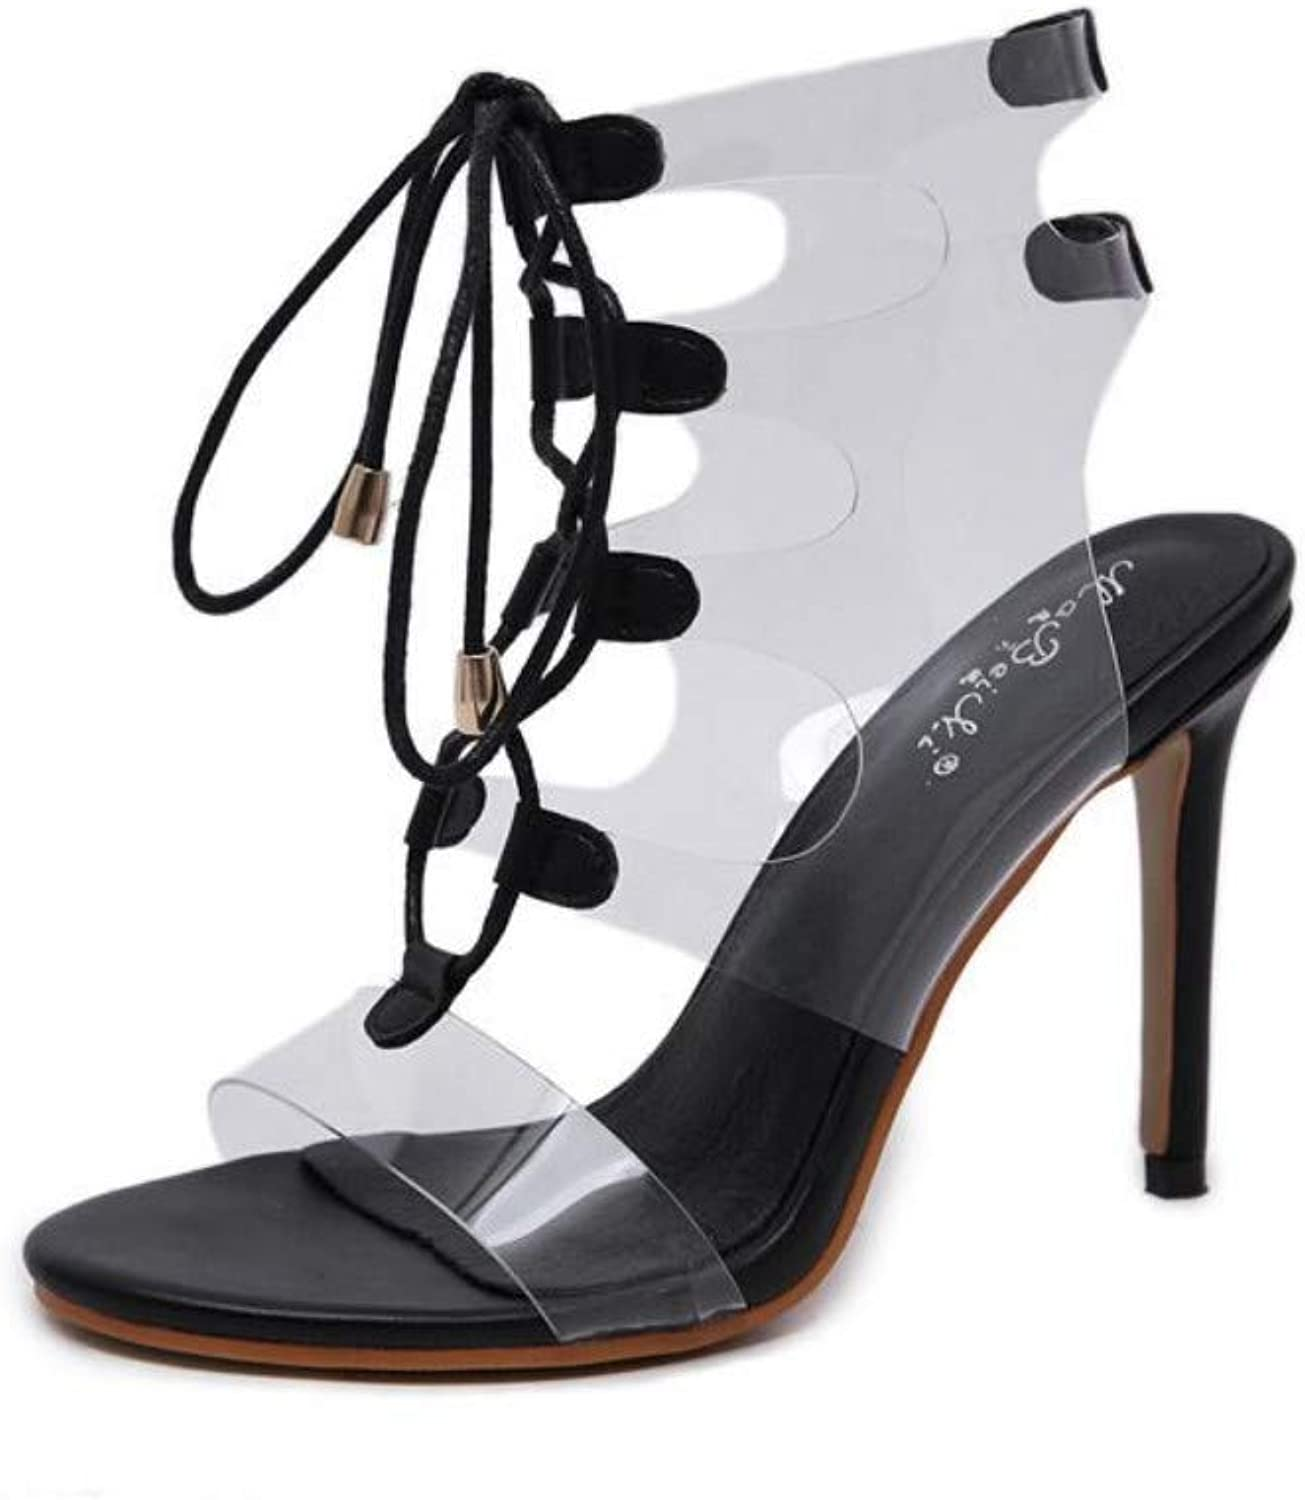 JQfashion Ladies'High Heels Transparent Hollow-Out Sexy High-Heeled Sandals Laced with Pointed Thin-Heeled Roman shoes